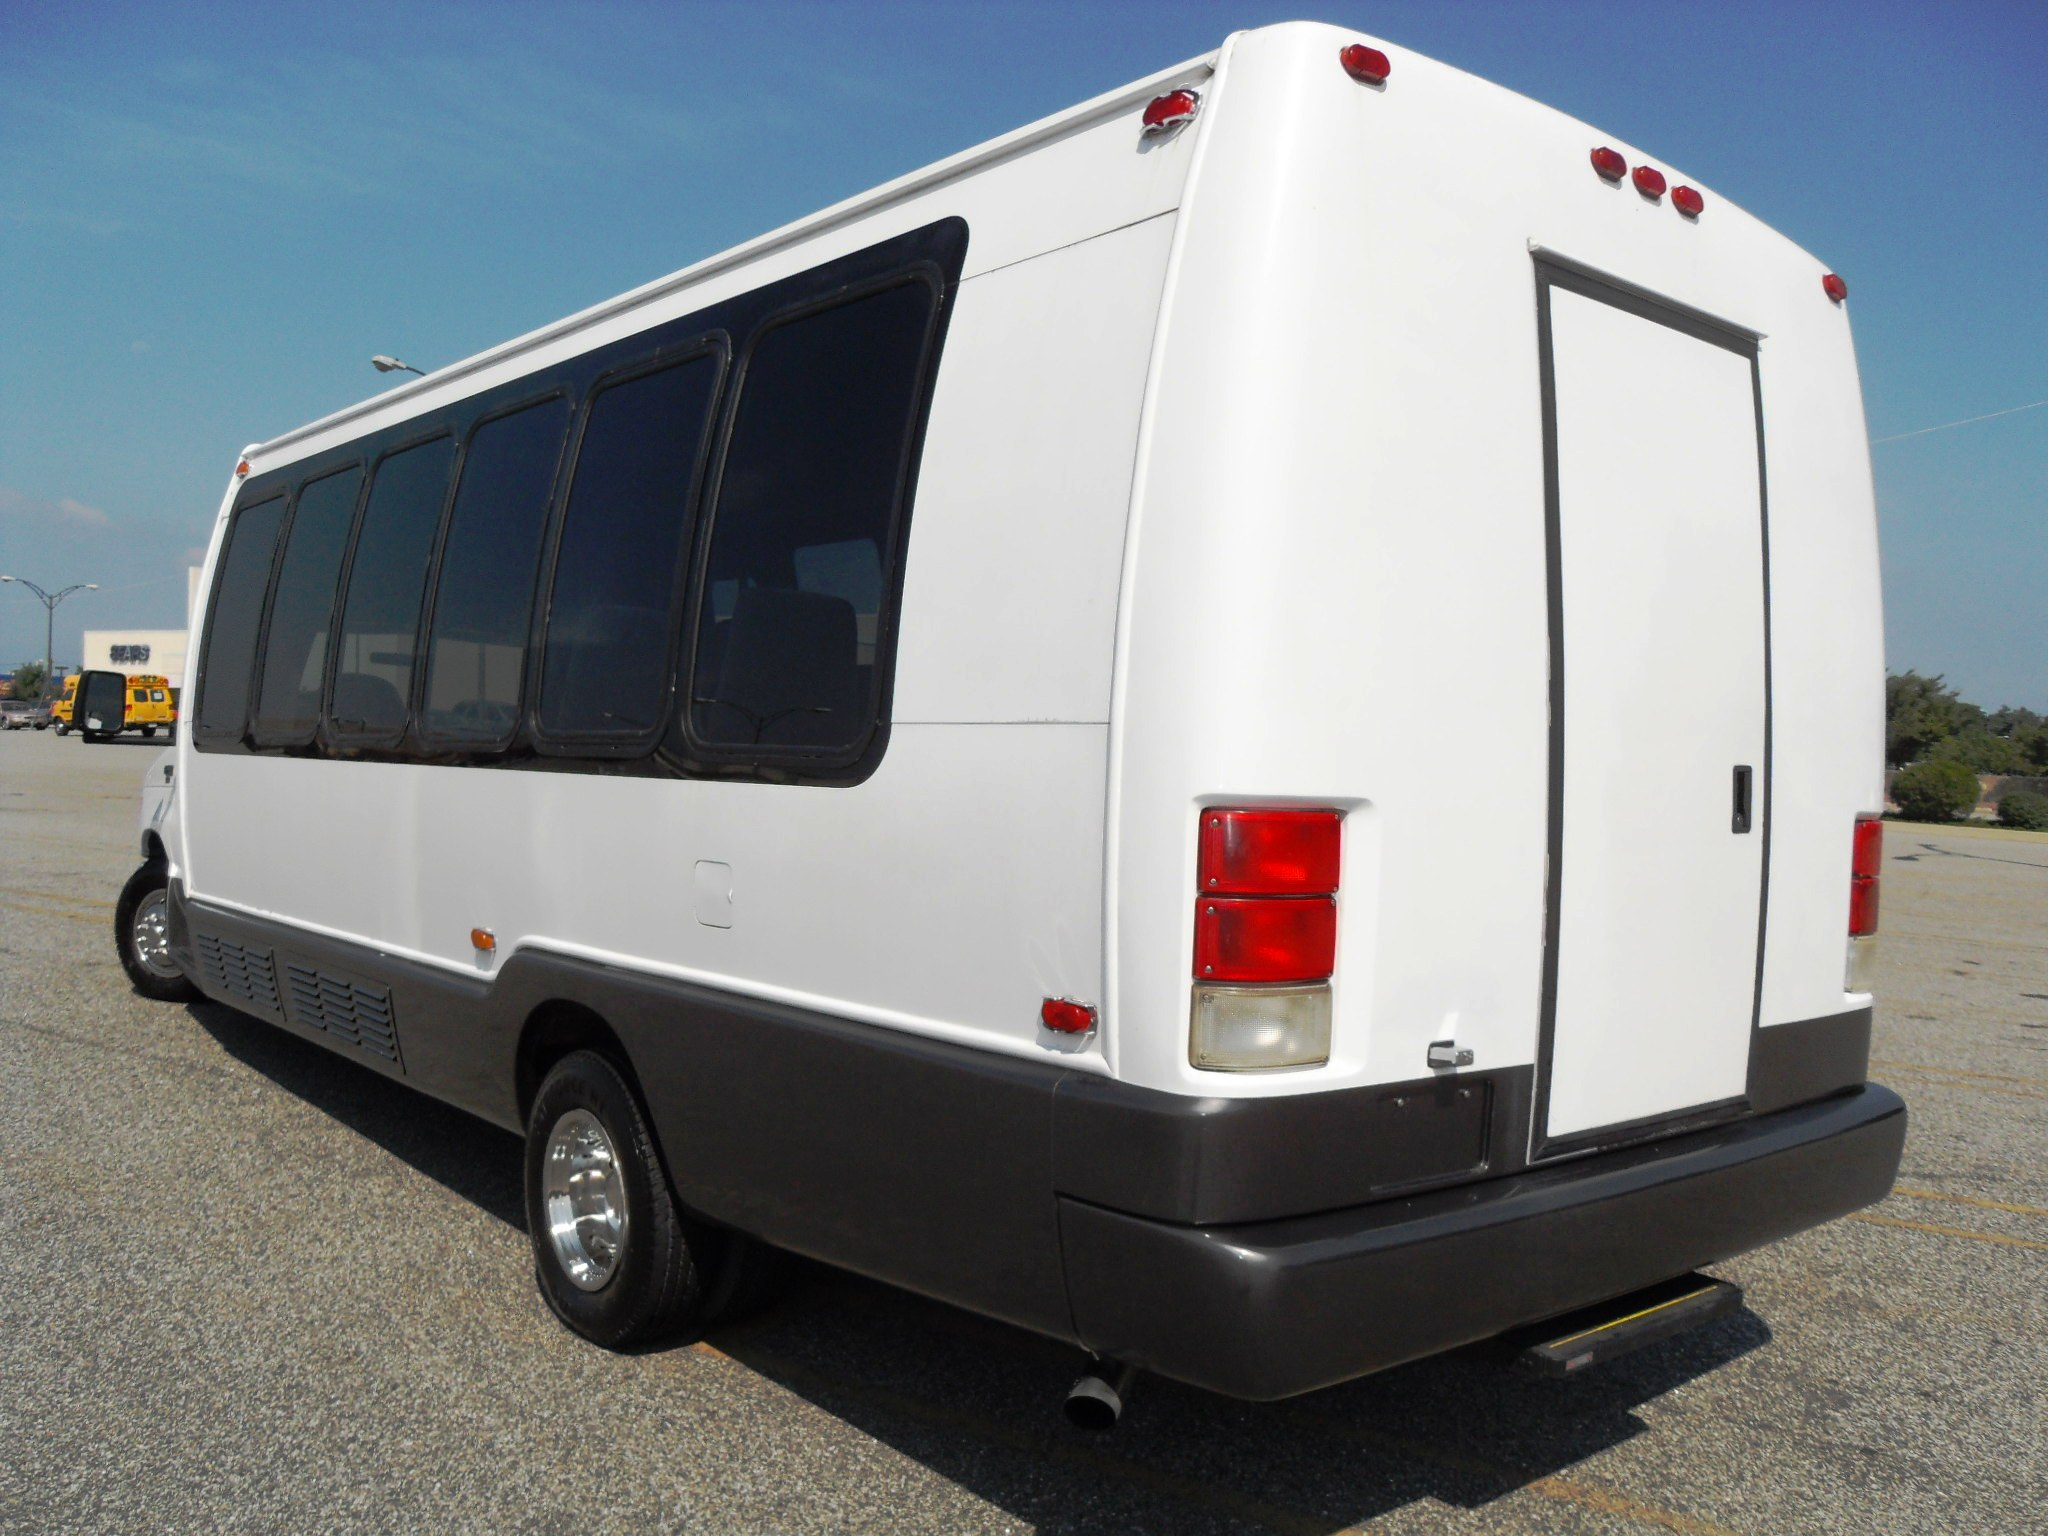 2005 Ford E-450 Krystal Bus For Sale